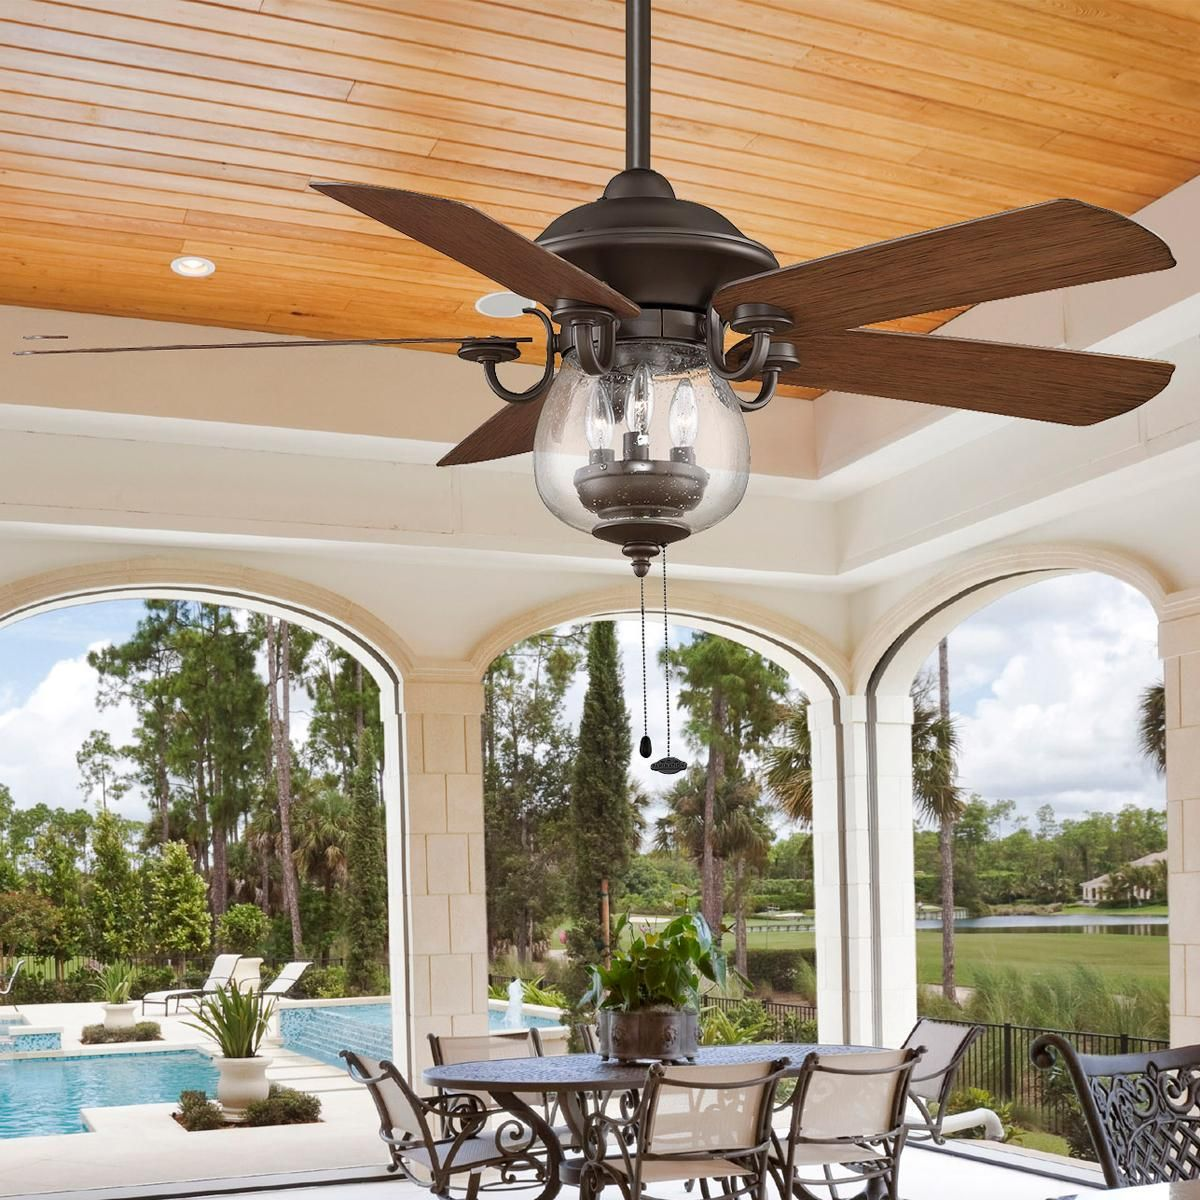 Best Ceiling Fan For Large Great Room: Indoor/ Outdoor Cloche Glass Ceiling Fan